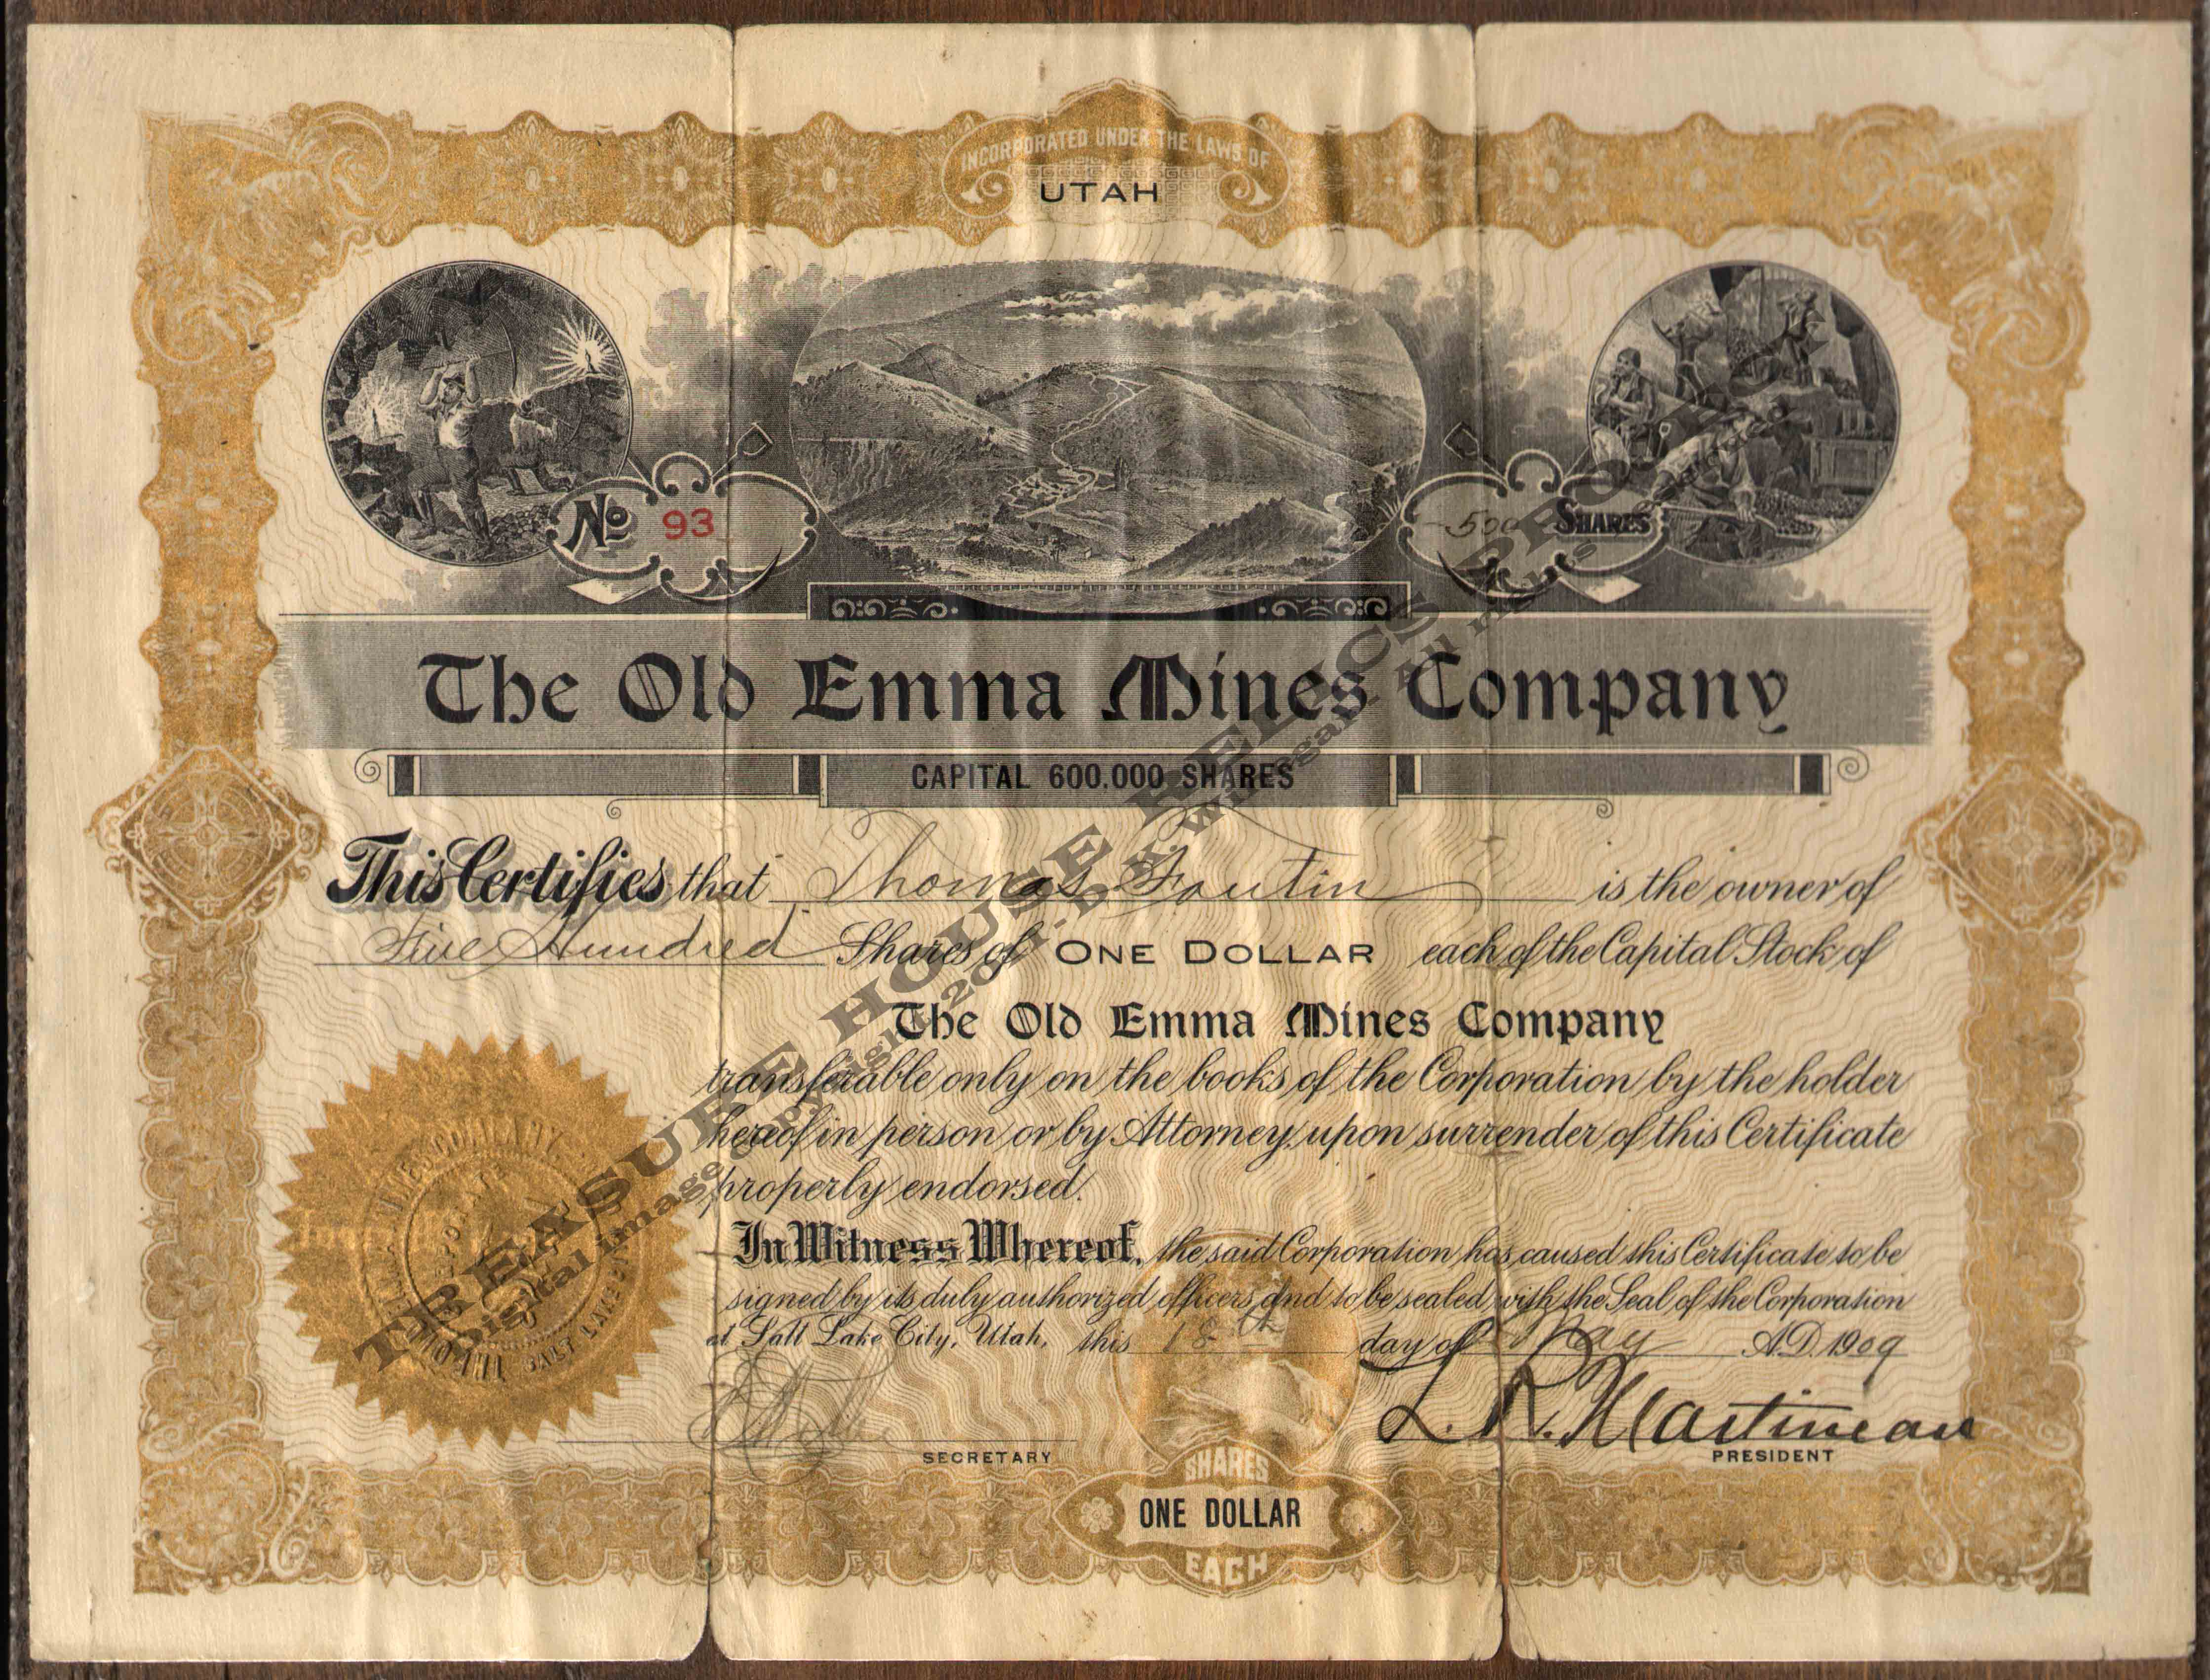 OLD_EMMA_MINES_CO_93_1909_400_SRM_crop_edit_emboss.jpg